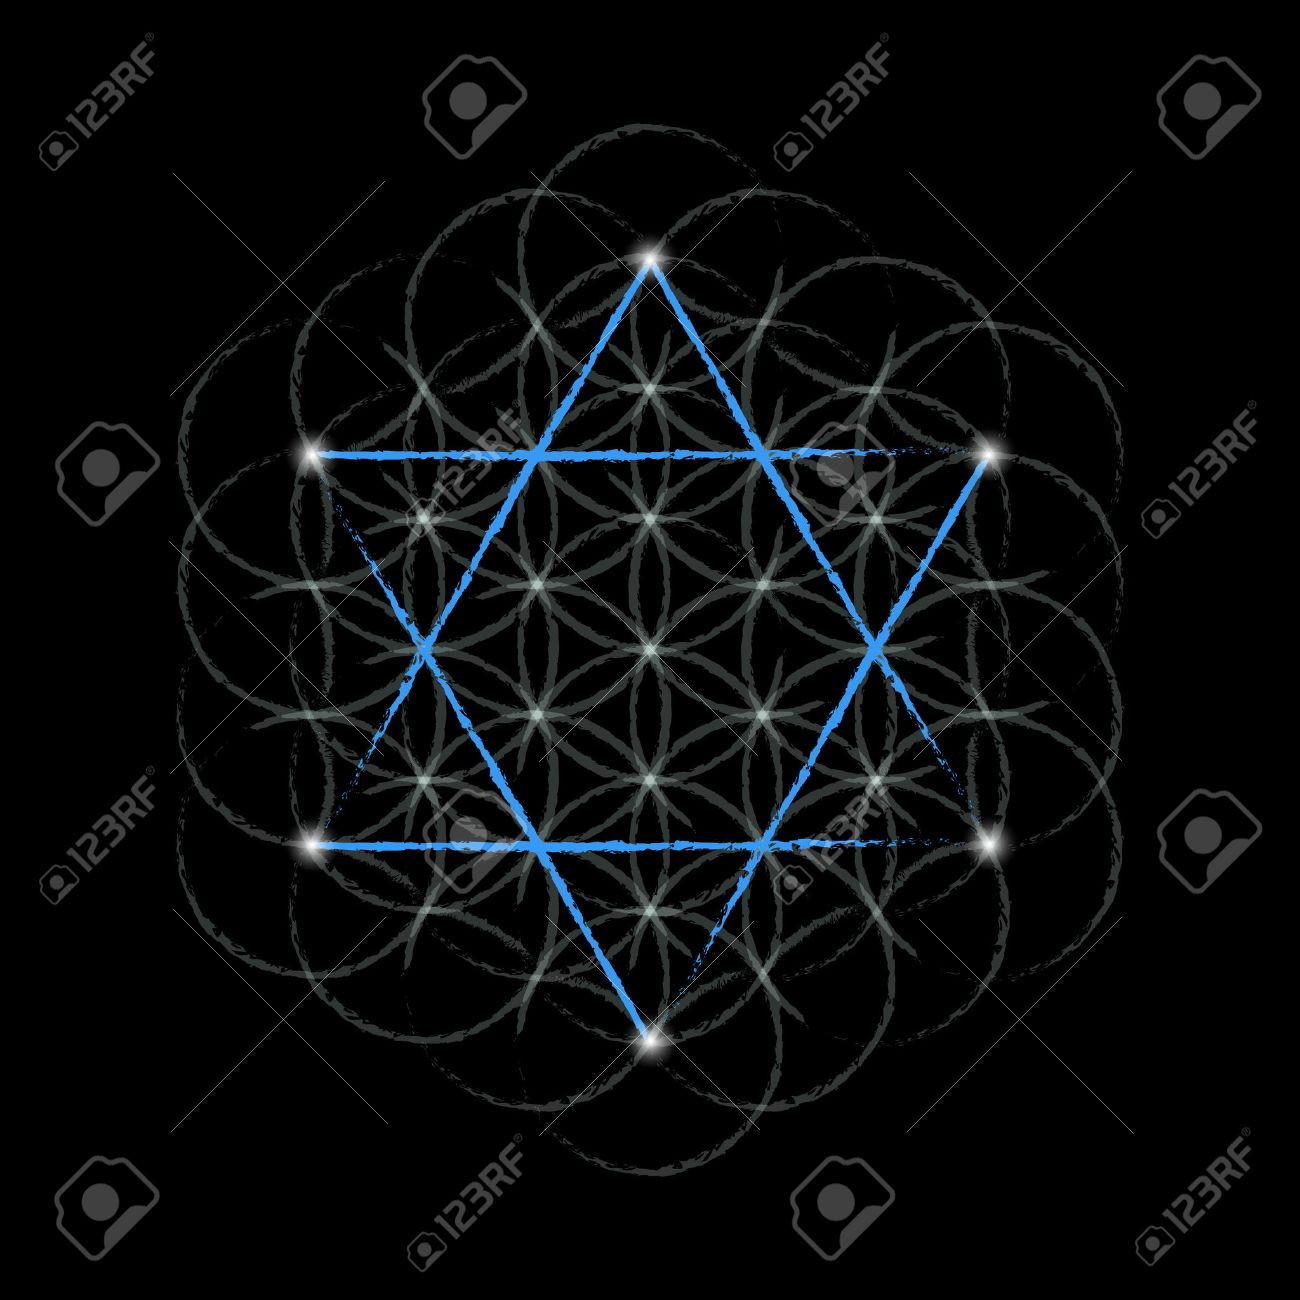 flower of life with david star sacred geometry vector illustration